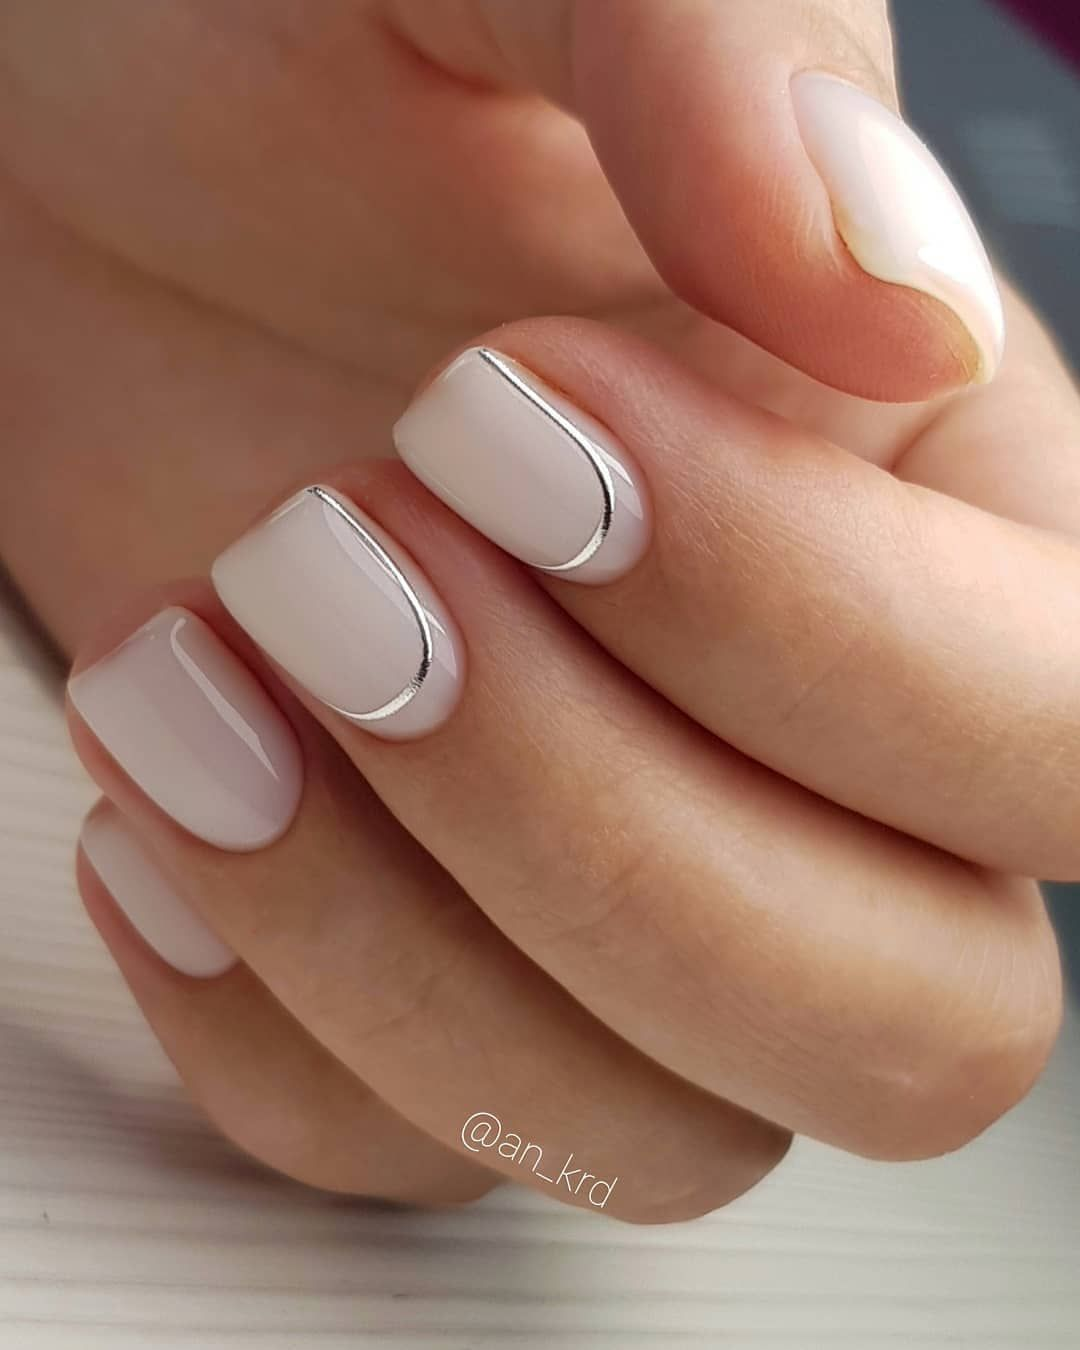 128 Spring Light Color Square Acrylic Nails Designs Square Acrylic Nails Acrylic Nail Designs White Tip Nail Designs